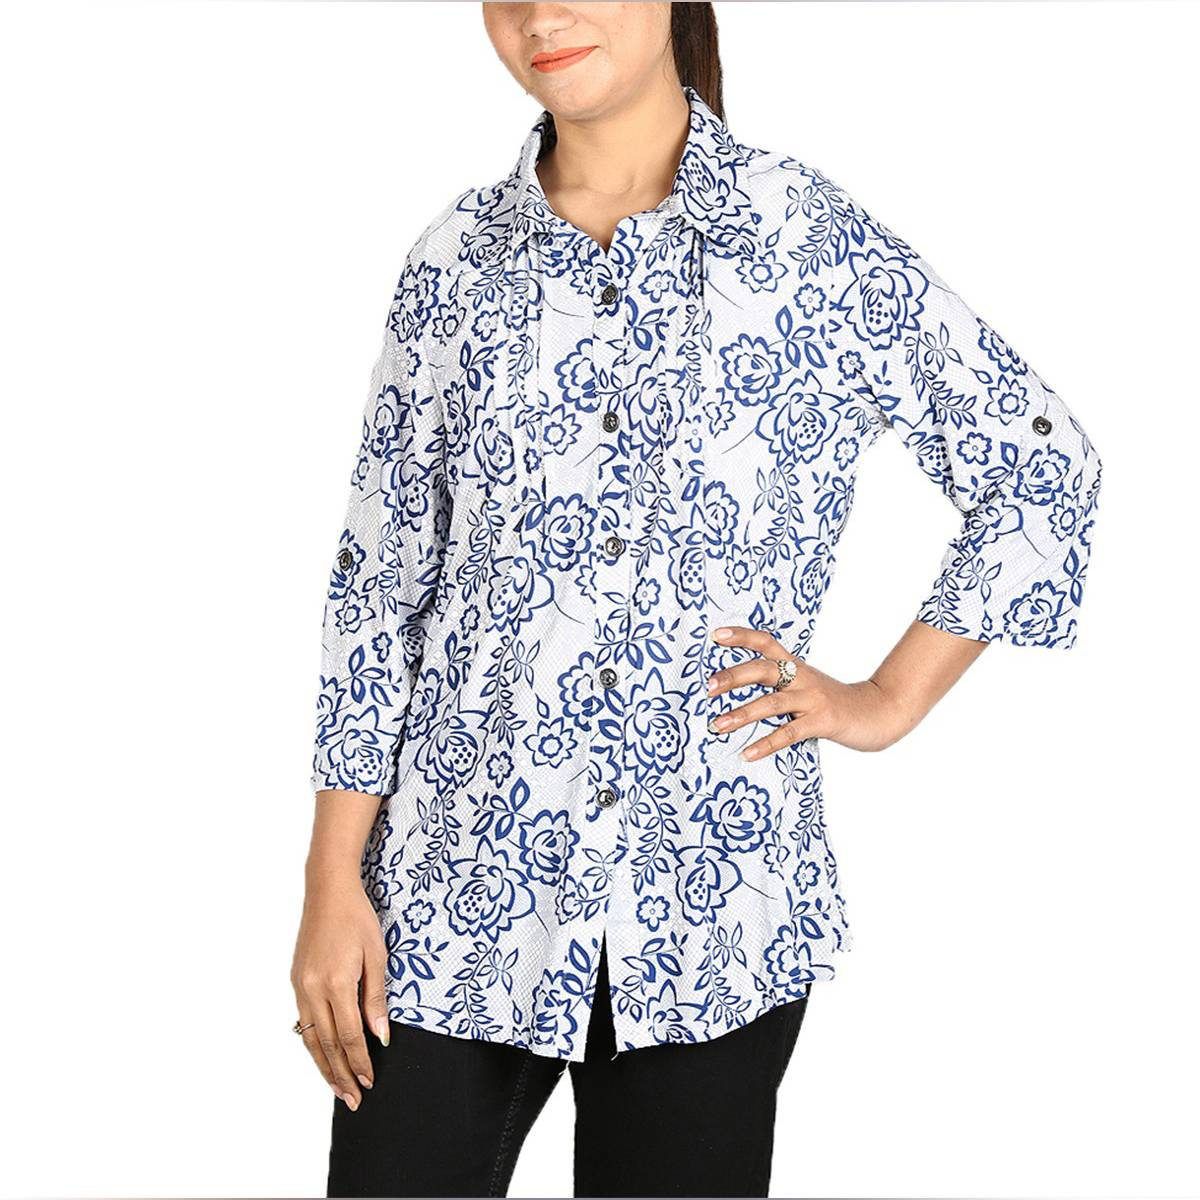 Flourish Half Sleeves Shirt Style Lycra Stretchable Lounge Wear Top For Girls